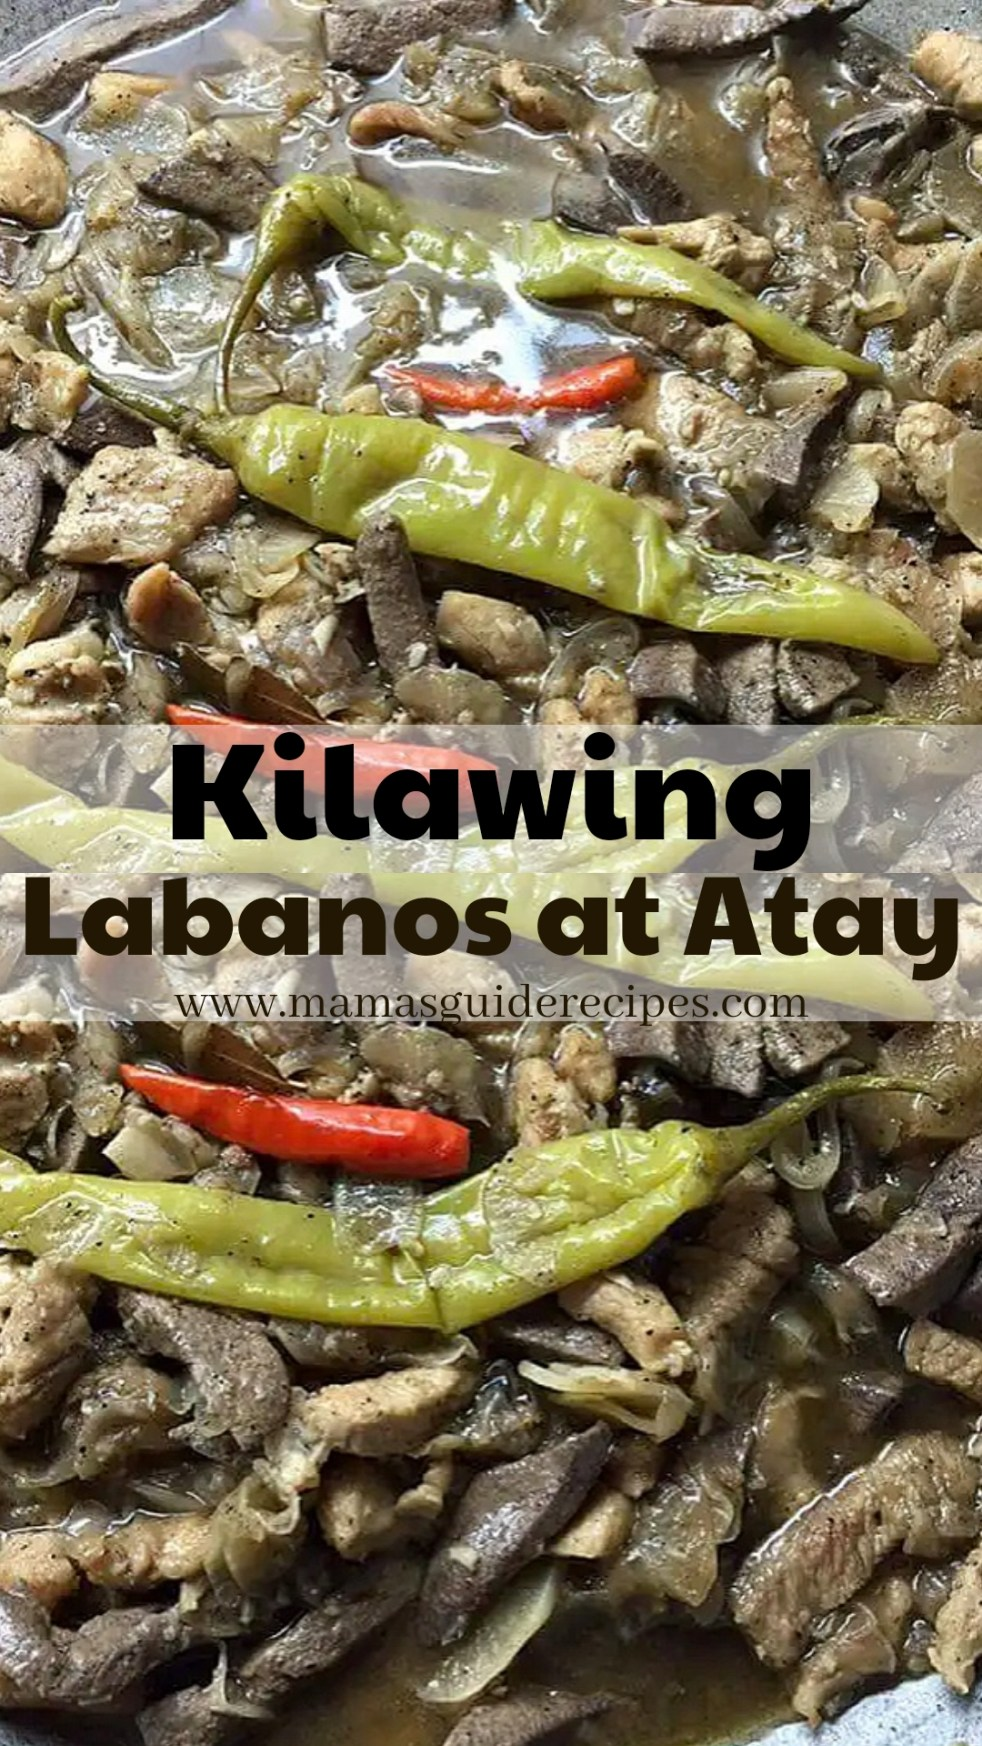 Kilawing Labanos at Atay